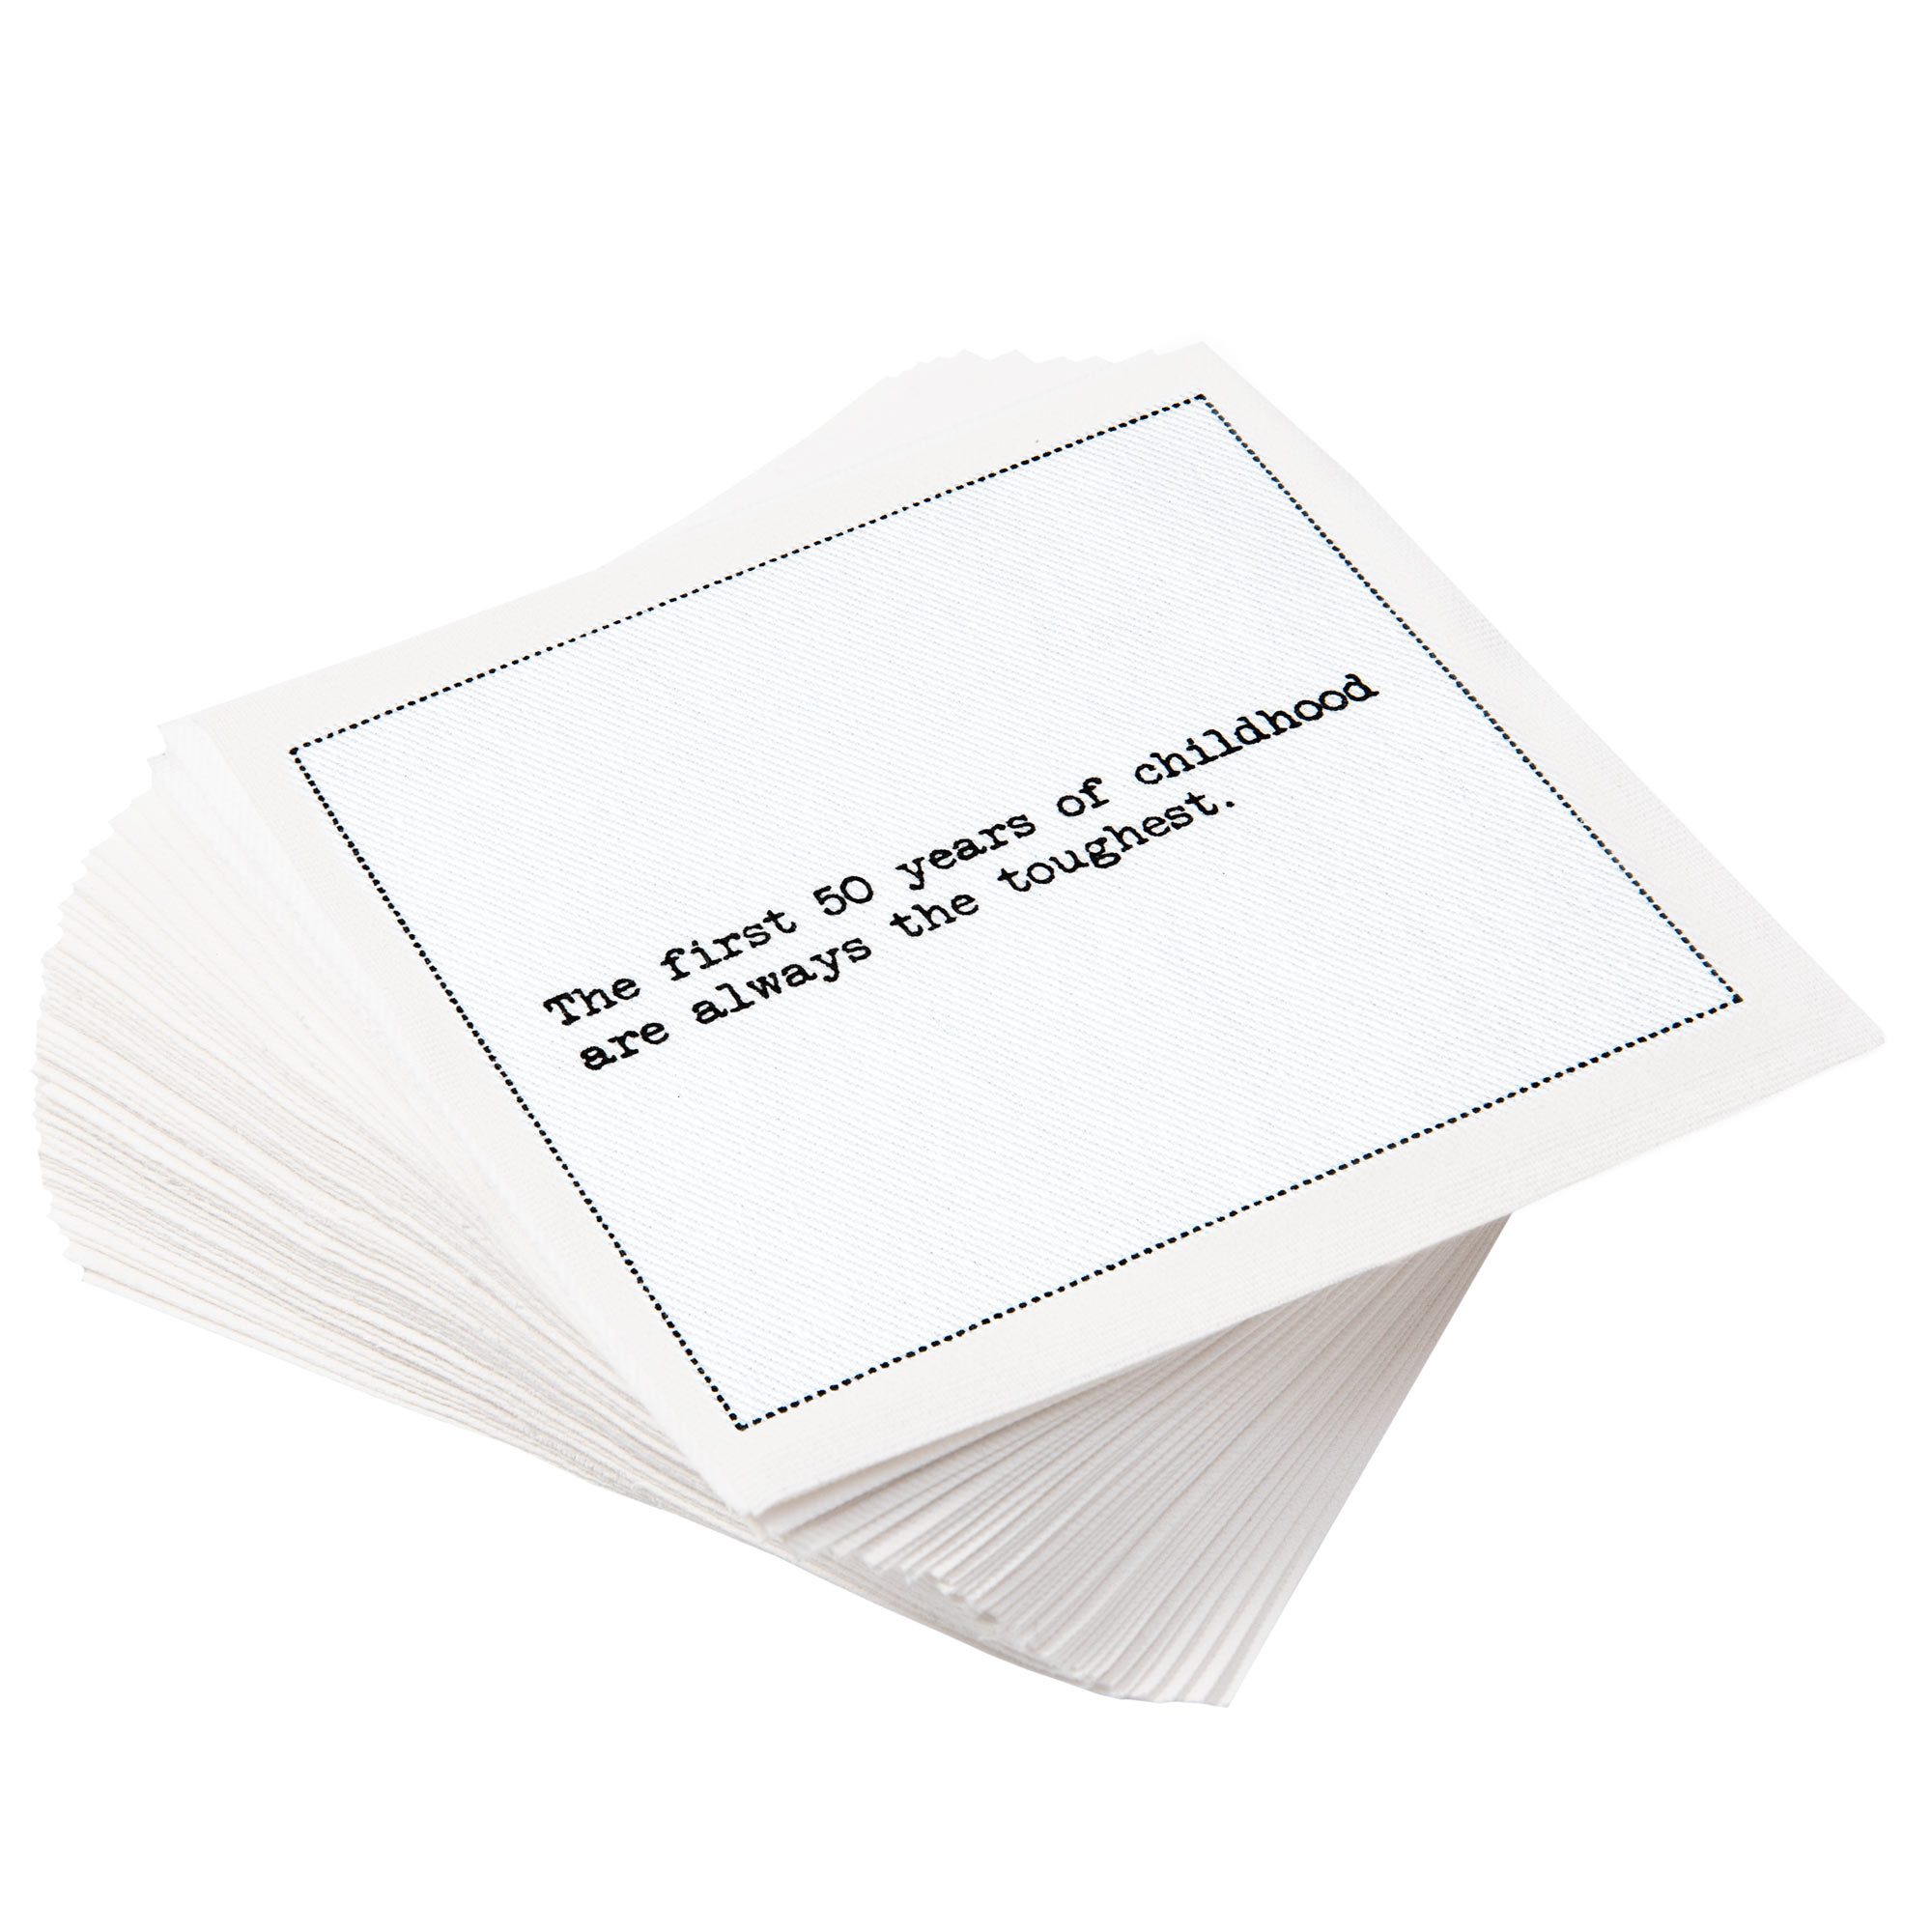 """White Cotton Cocktail with 50th Birthday Quotes - 4.5"""" x 4.5"""" - 1200 units - 50 units per pack"""